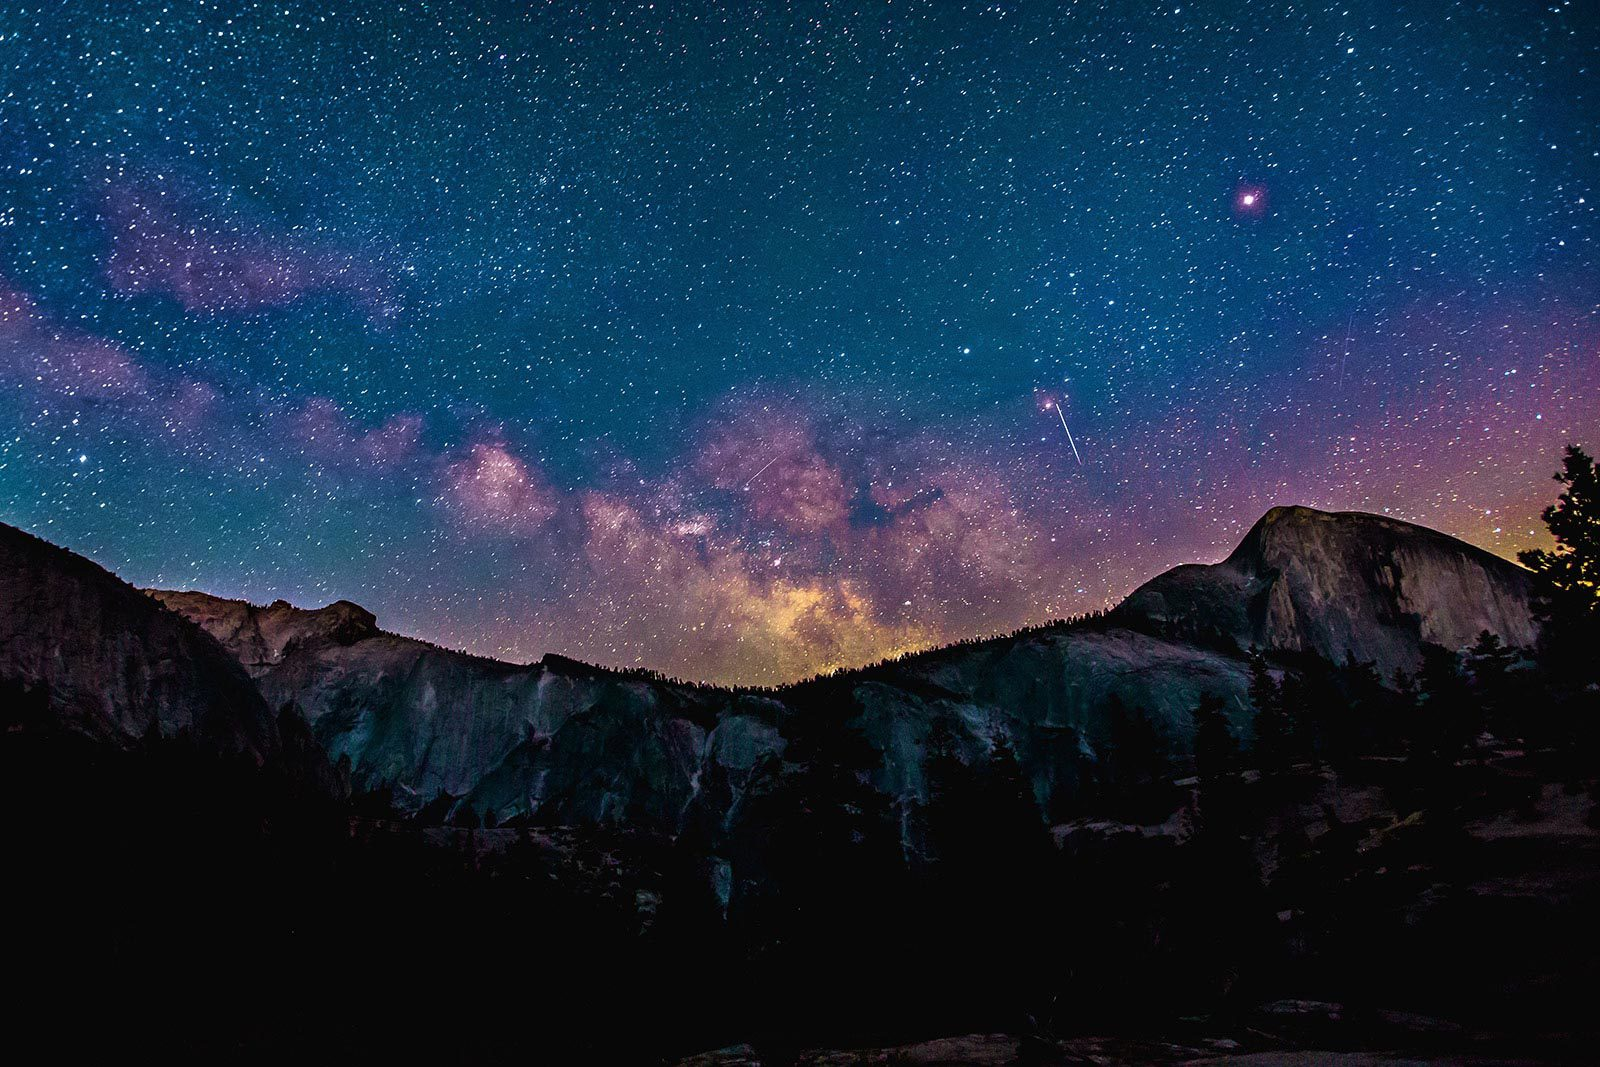 View of mountain under starry blue and purple sky.